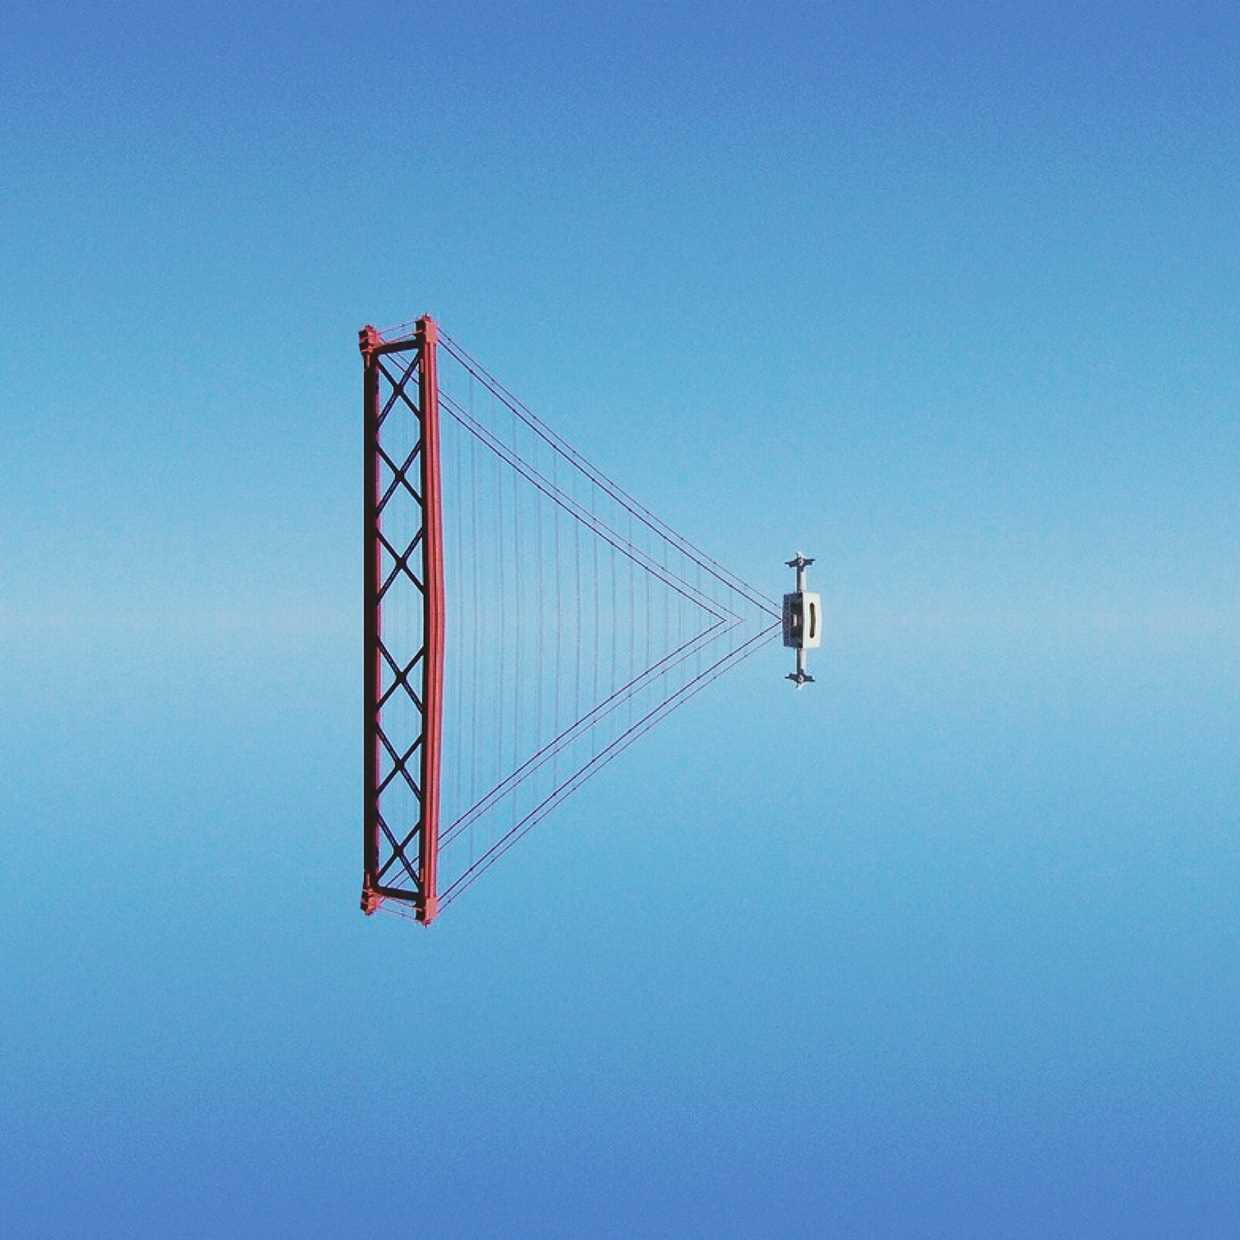 Symmetric Lisbon by Hugo Suíssas